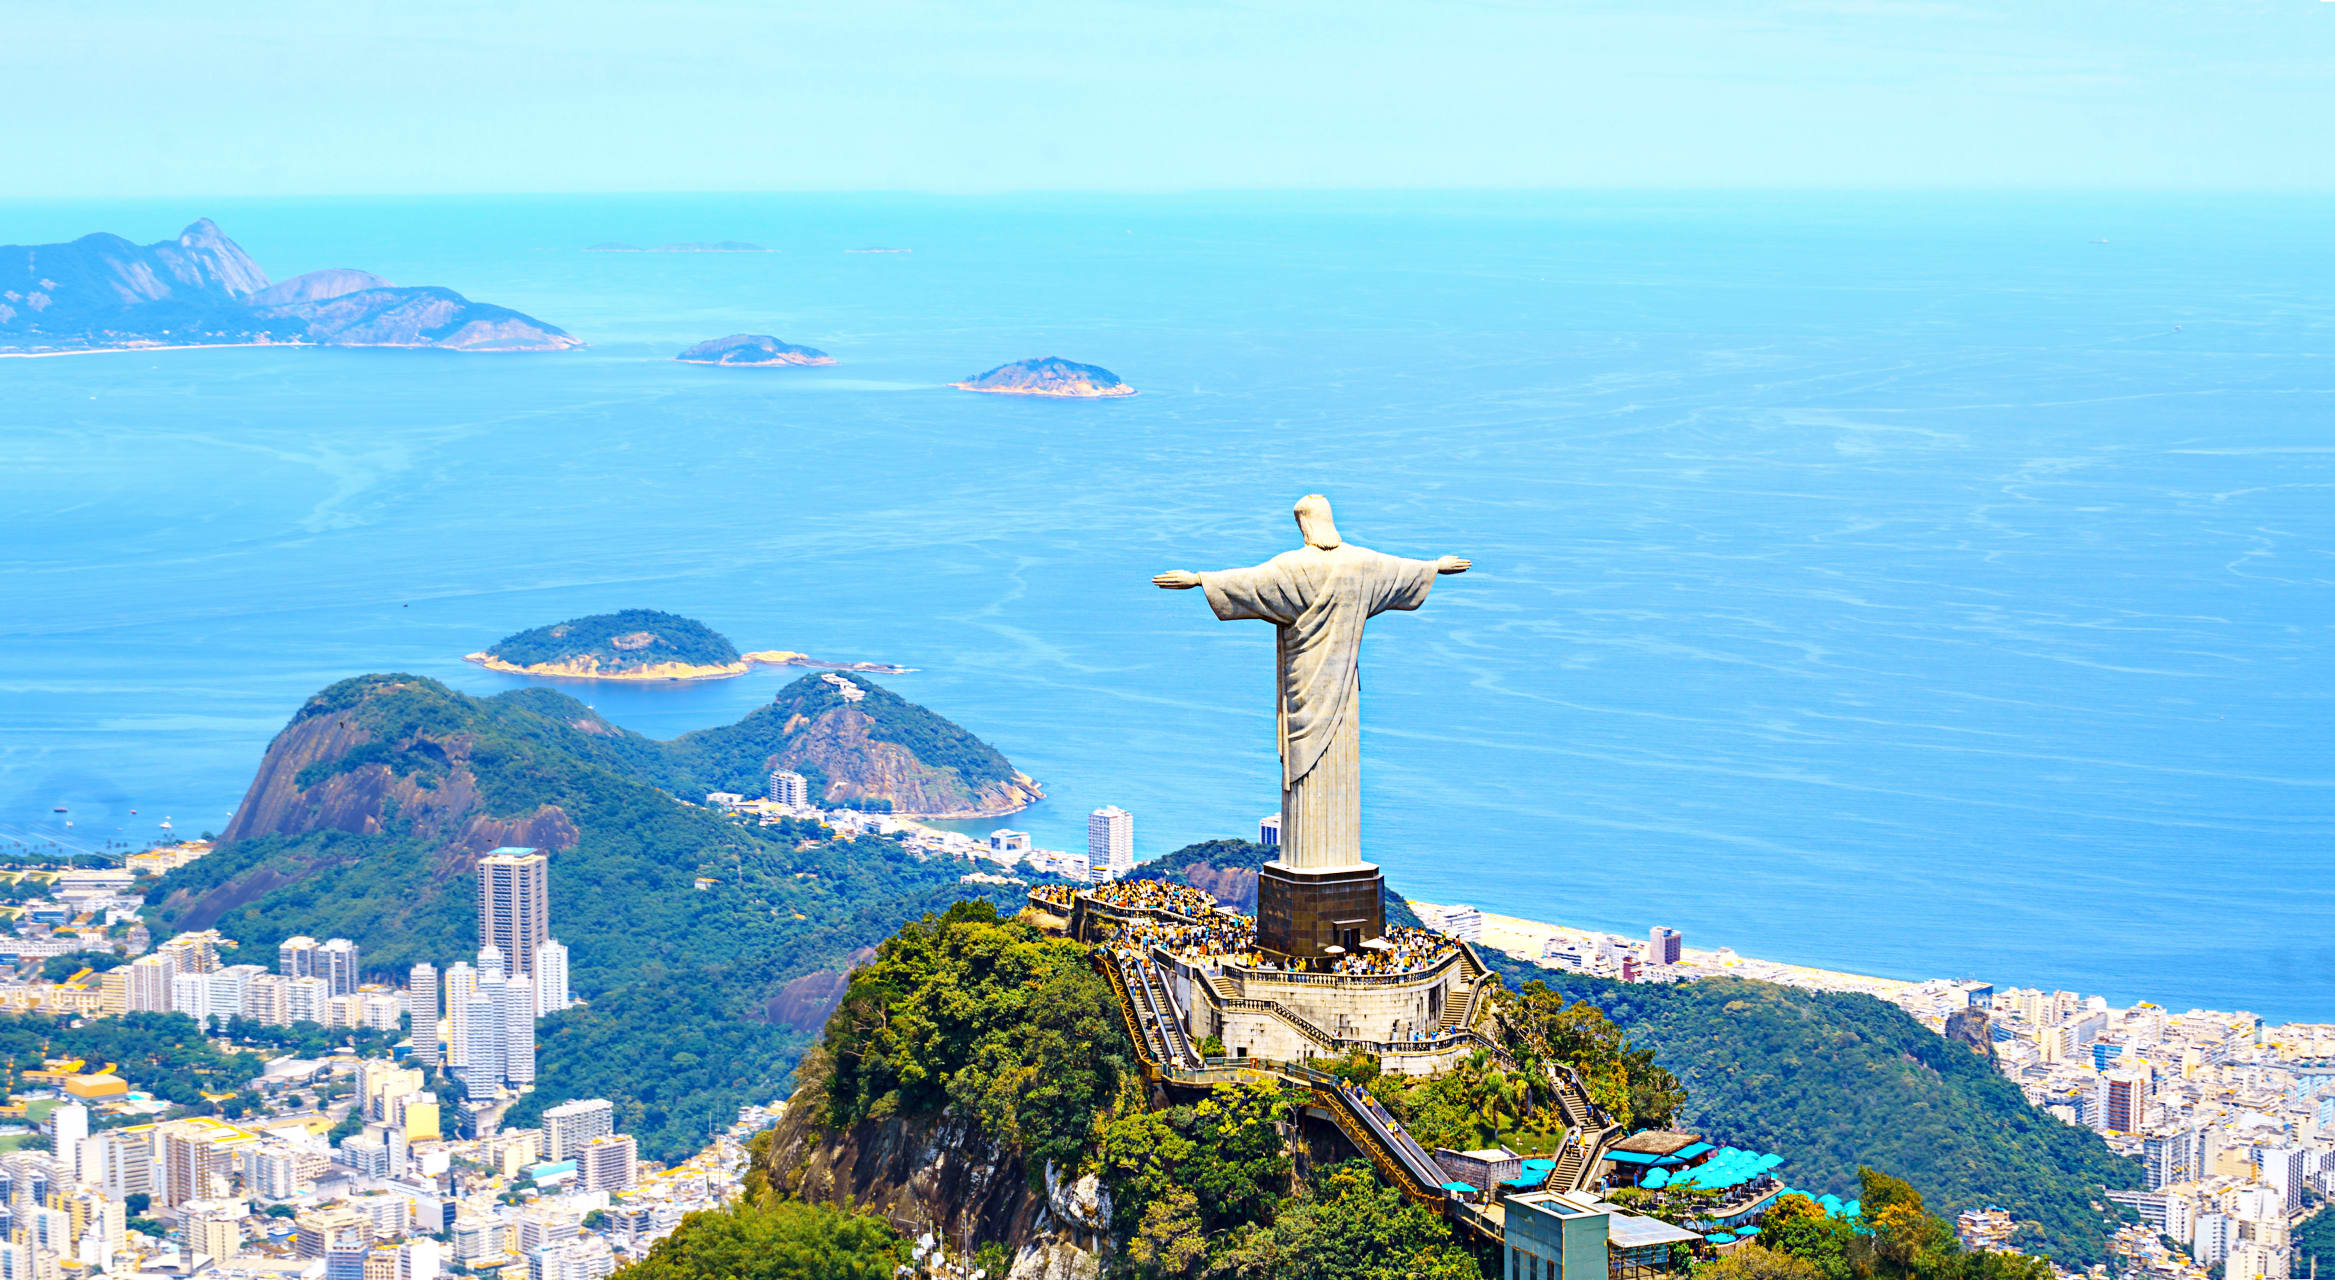 Rio de Janeiro - One of the 7 New Wonders of the World: Christ the Redeemer!